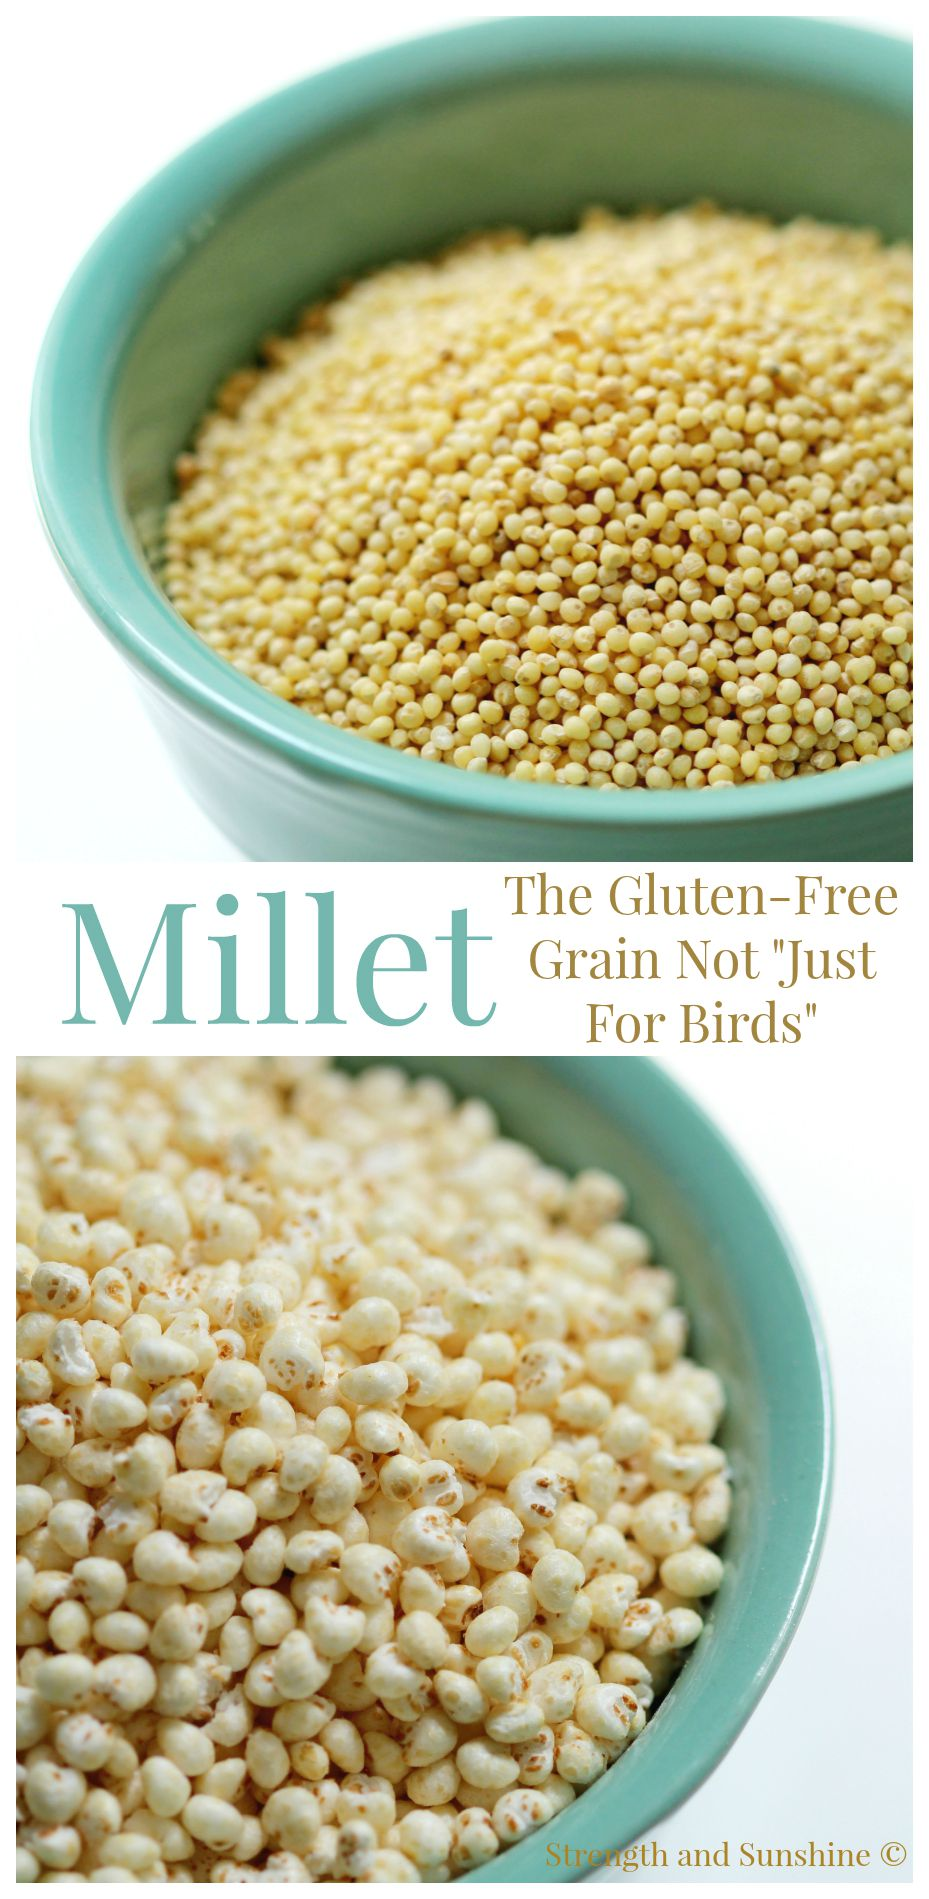 "Millet: The Gluten-Free Grain Not ""Just For Birds"" 